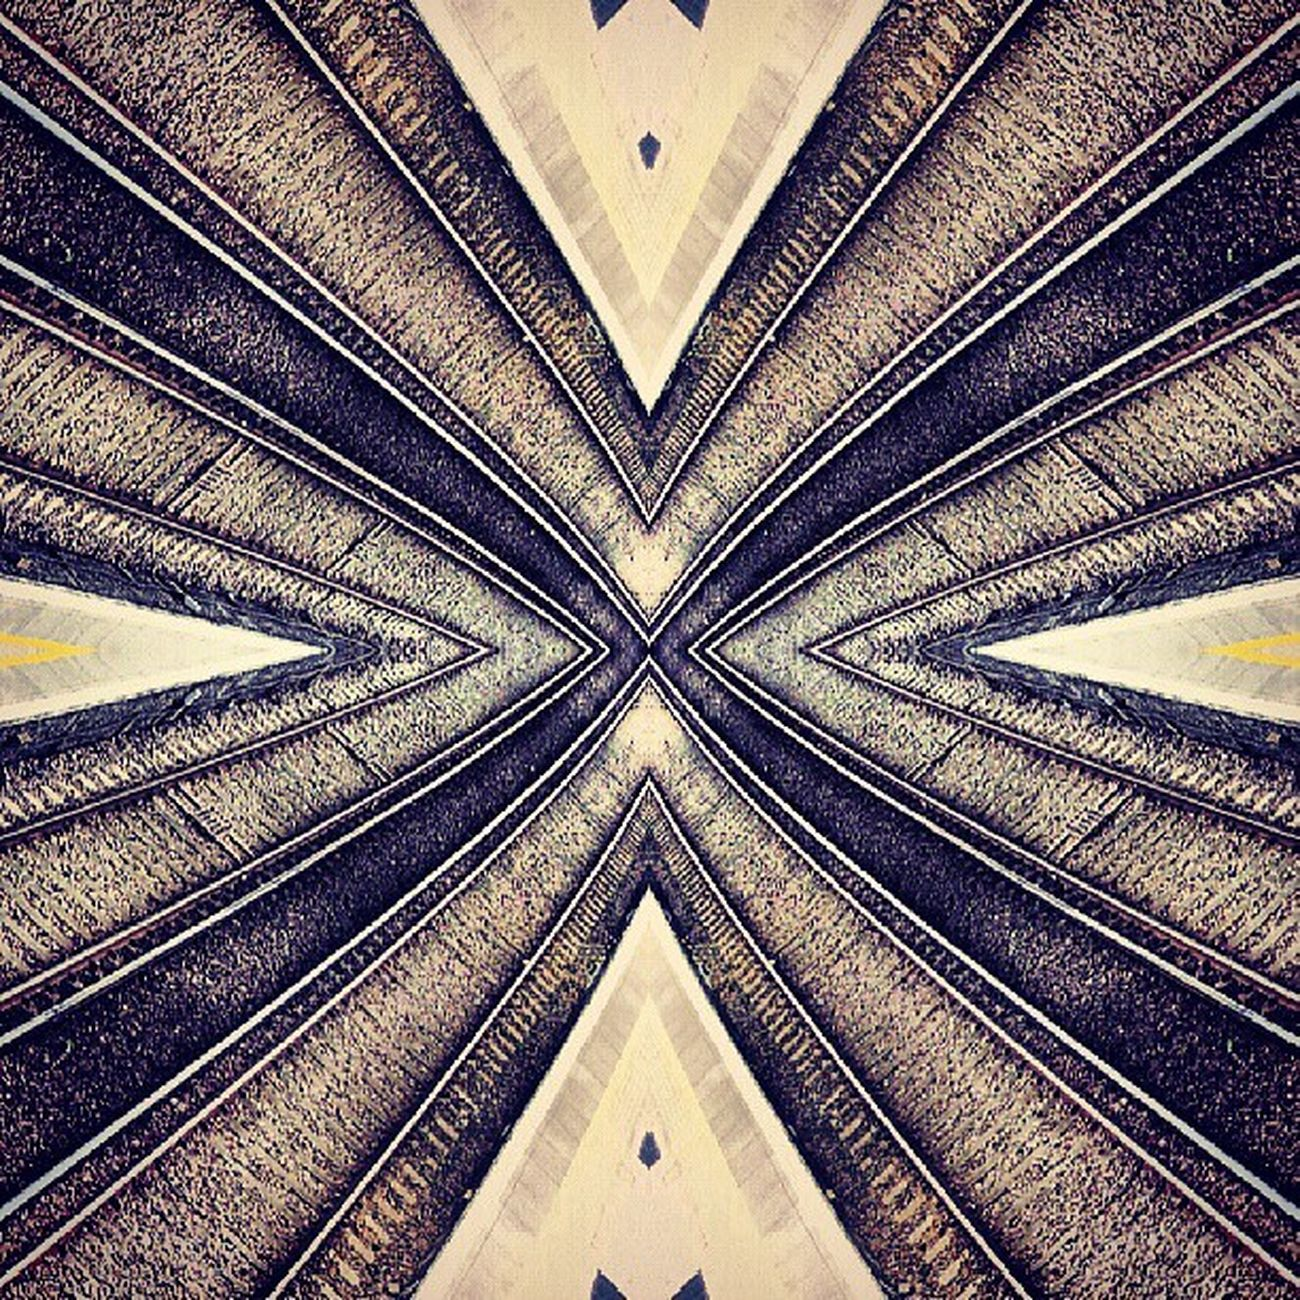 Symmetry Symmetryporn Symmetrybuff Abstracting_architects mirrorgram canonbury